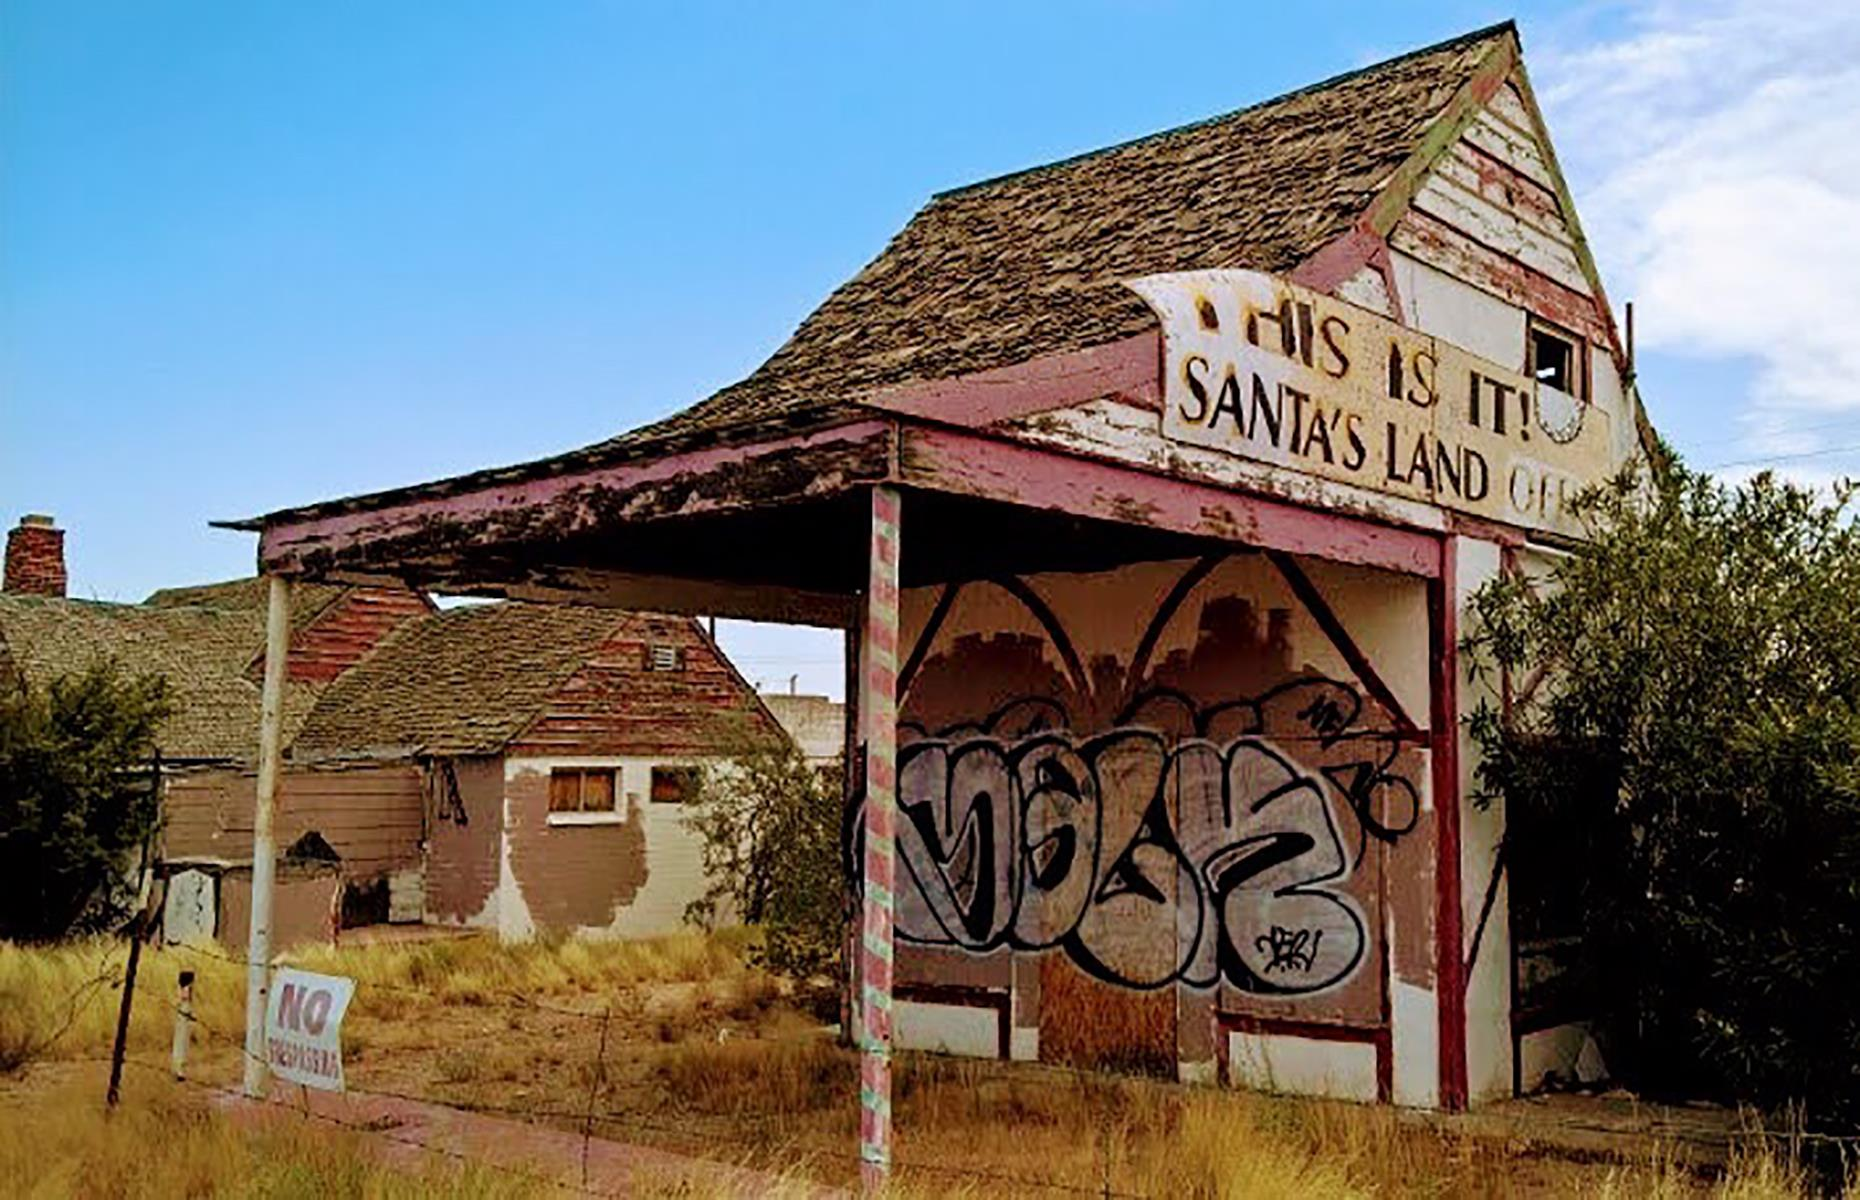 Slide 6 of 101: Just the sort of place you'd expect to find Pennywise, the scary clown in movie It, Santa Claus is a sinister Christmas-themed ghost town in Mohave County. The bizarretown was established in 1937 by realtor Nina Talbot, who hoped to attract buyers to the area.